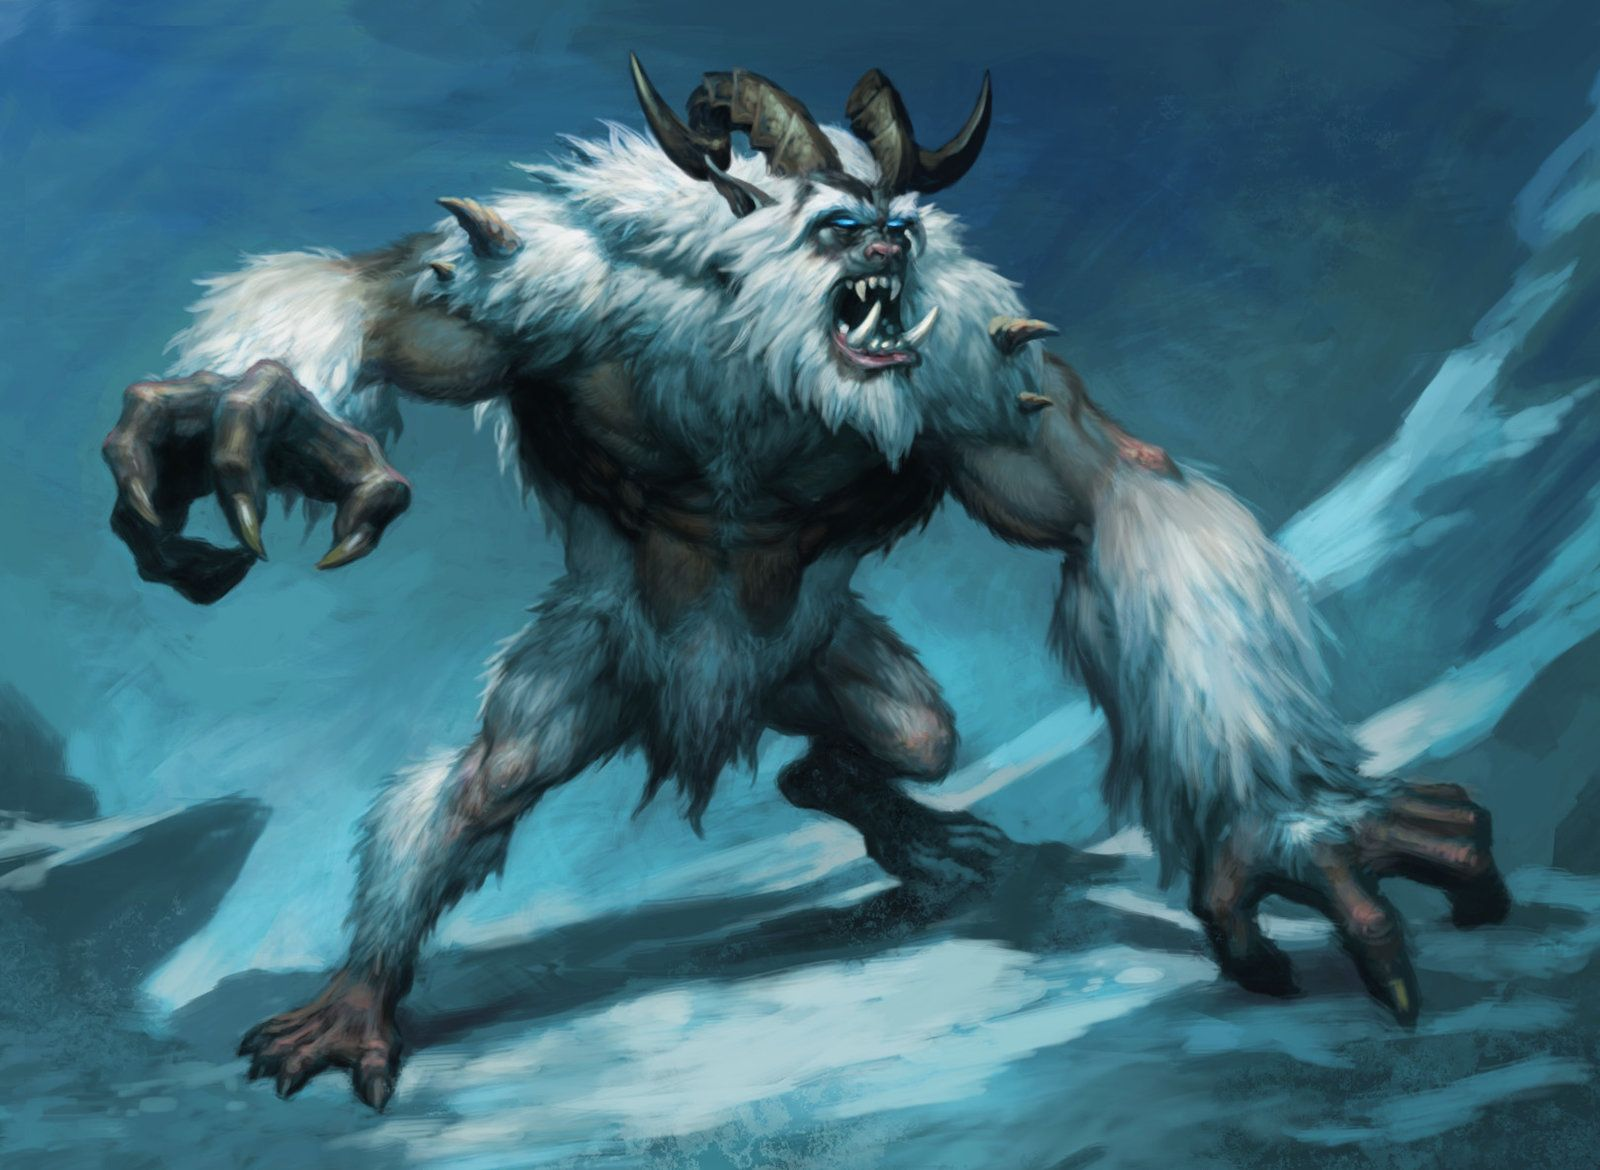 Yeti by Chris Dien on ArtStation Fantasy monster, Beast